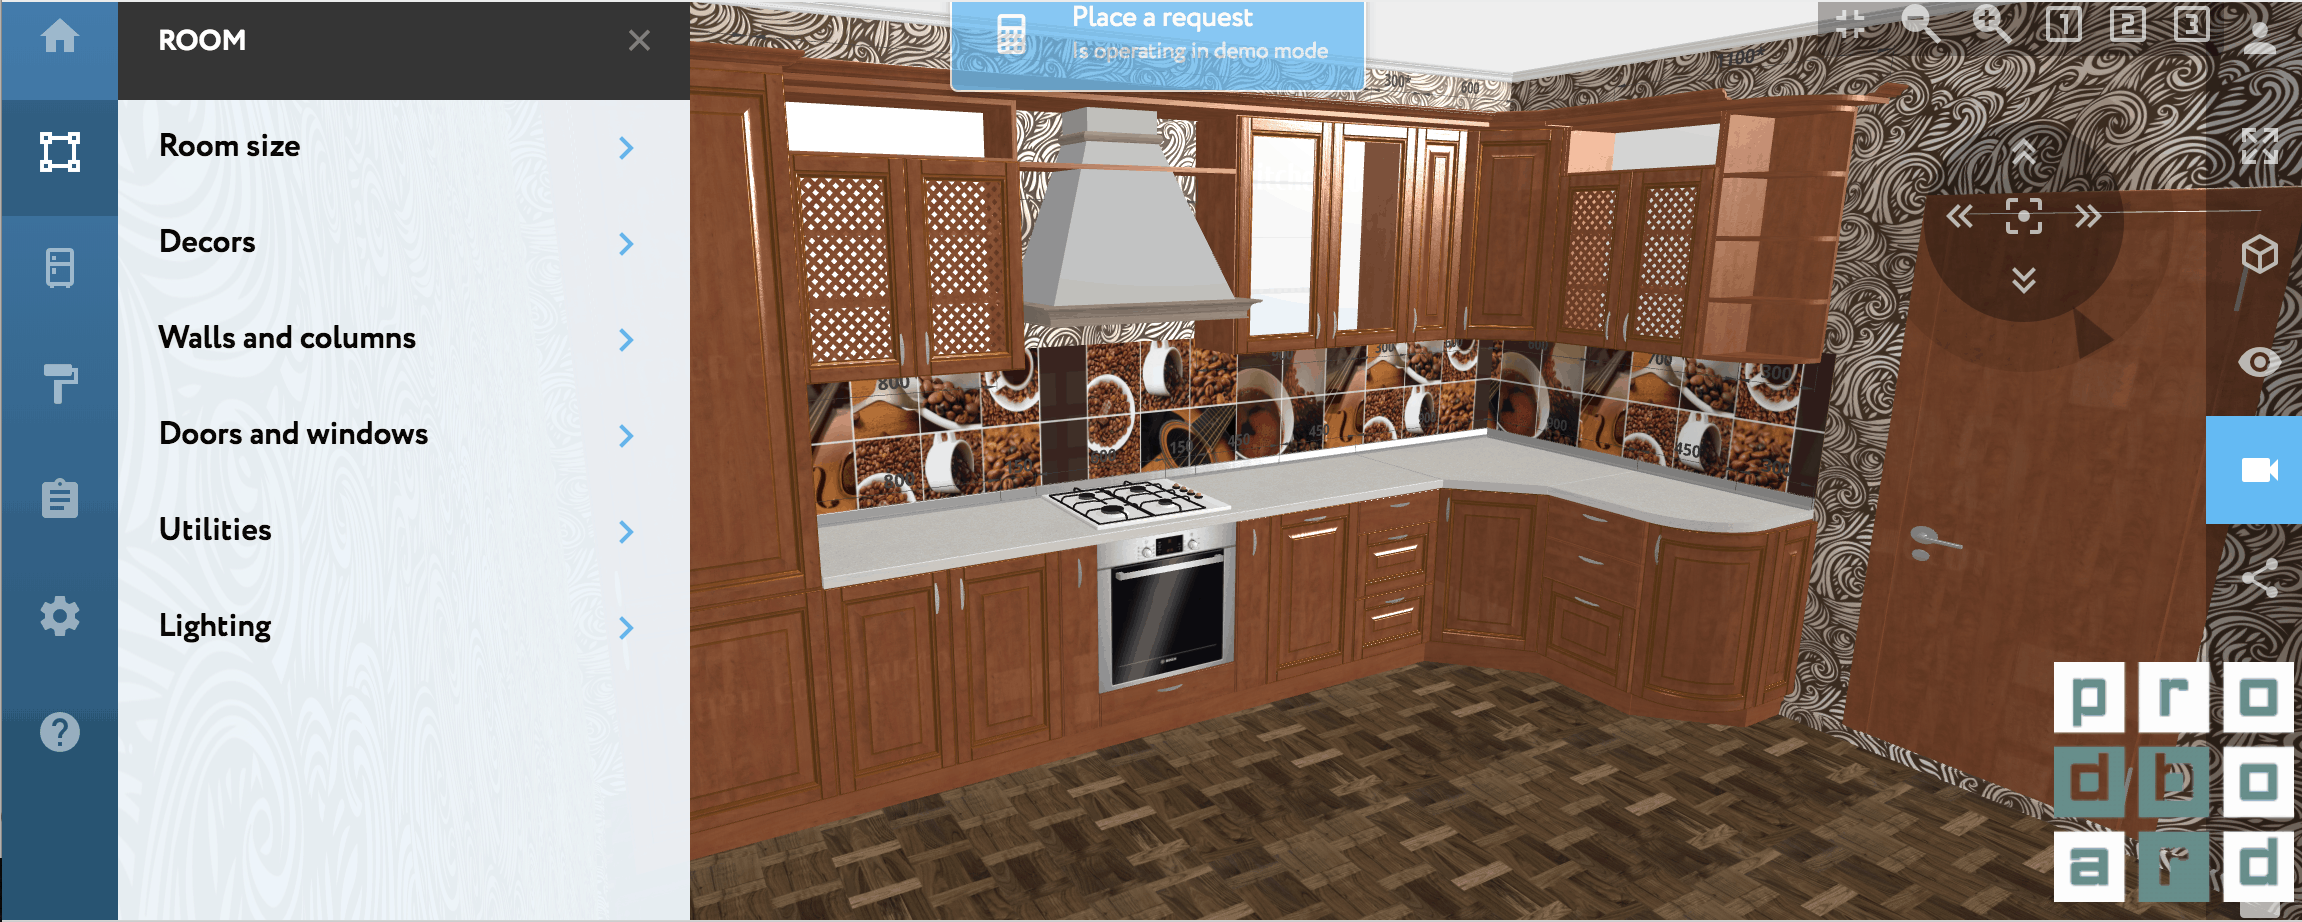 Exceptional Prodboard Kitchen Design Interface